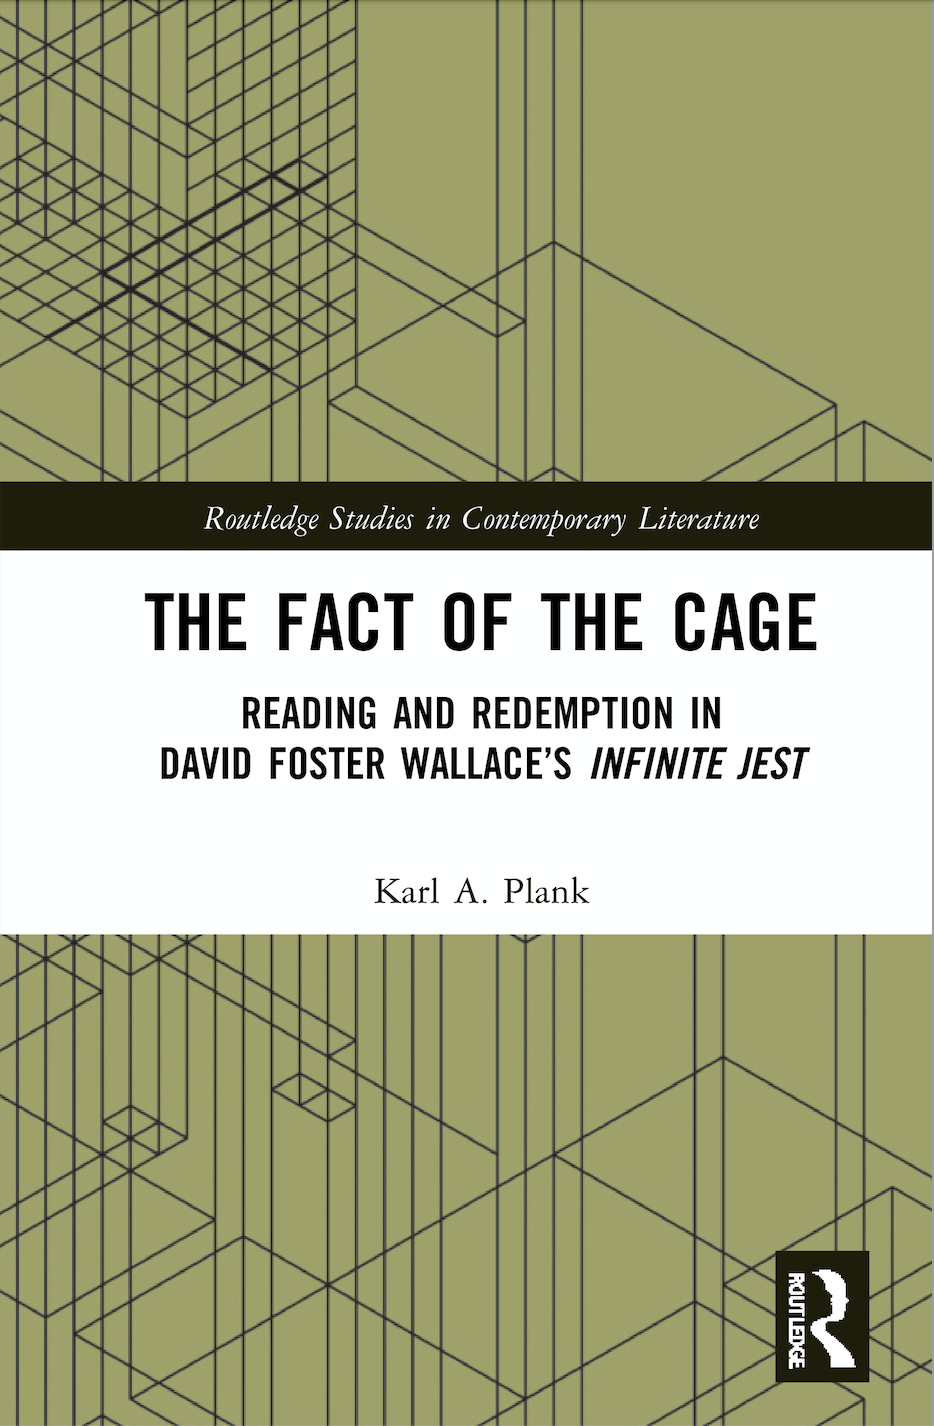 K. A. Plank. The Fact of the Cage. Reading and Redemption In David Foster Wallace's